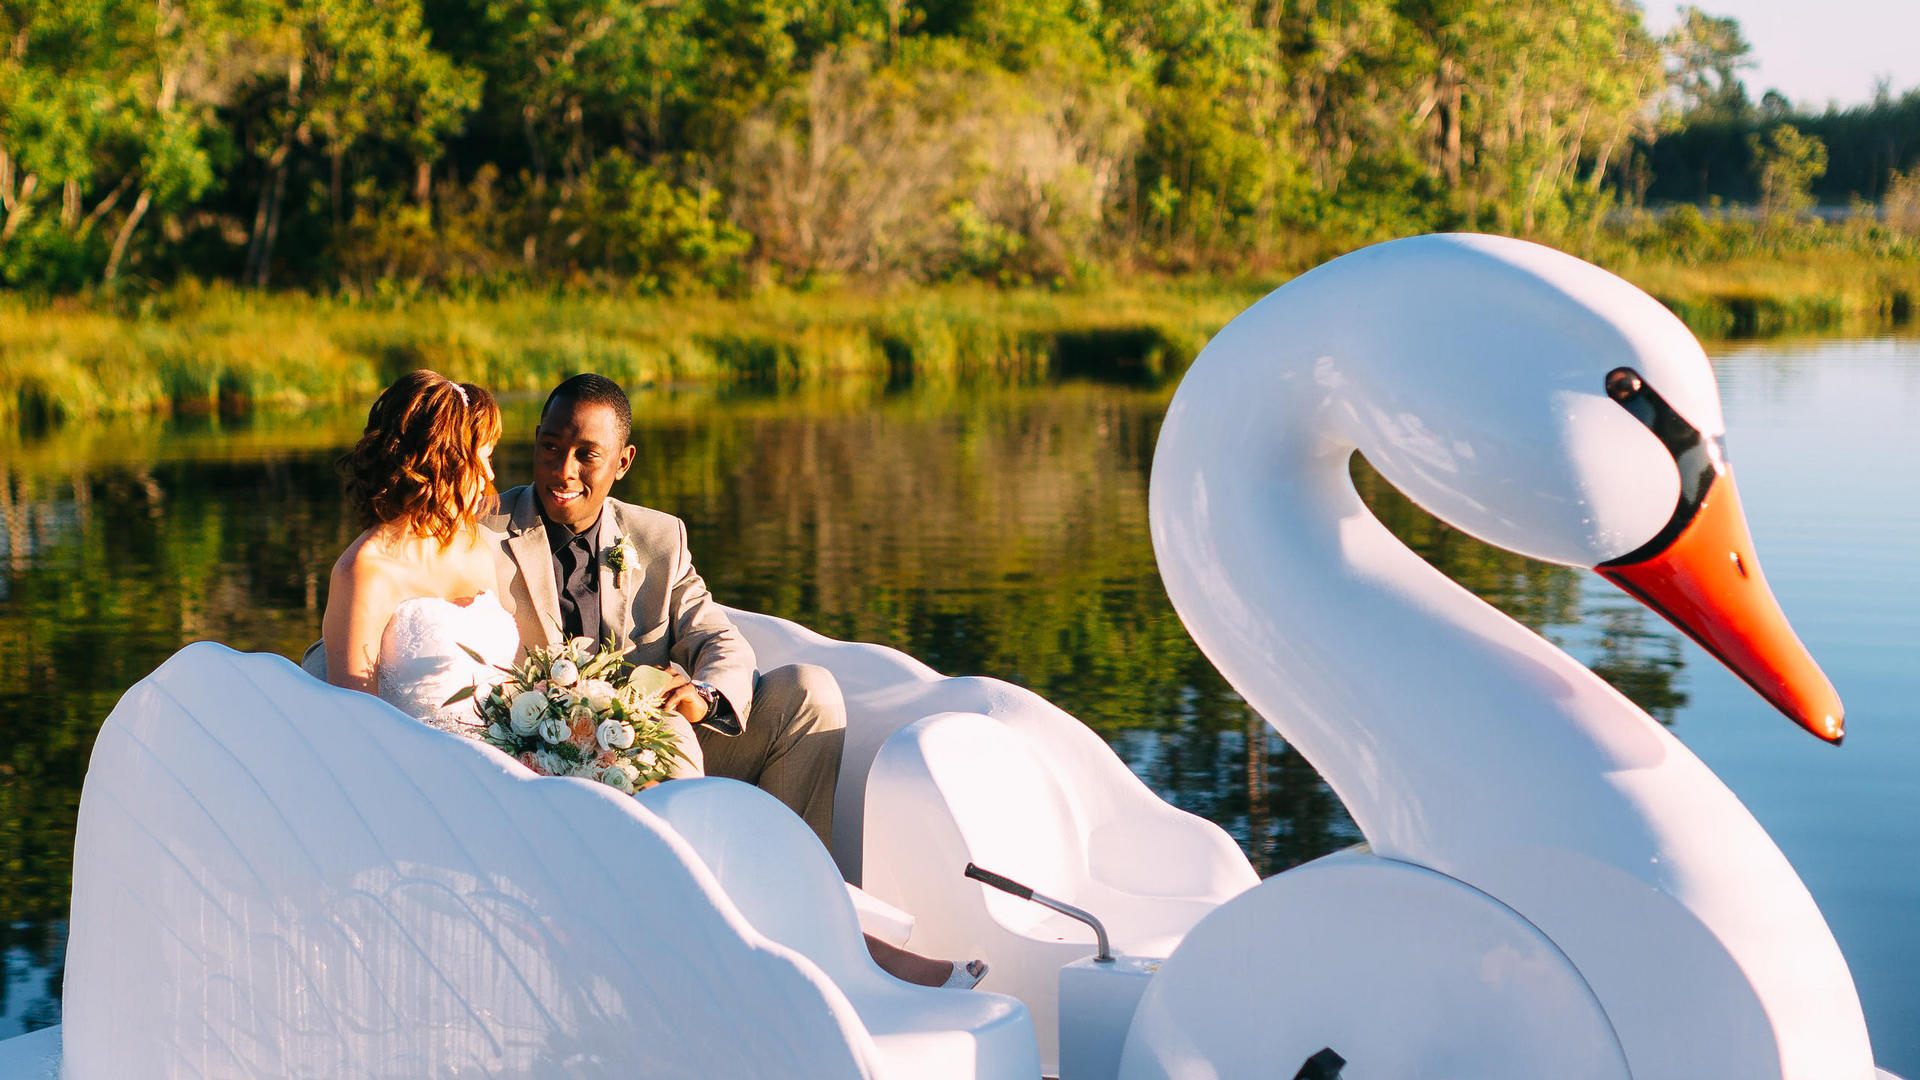 newlyweds on a swan boat